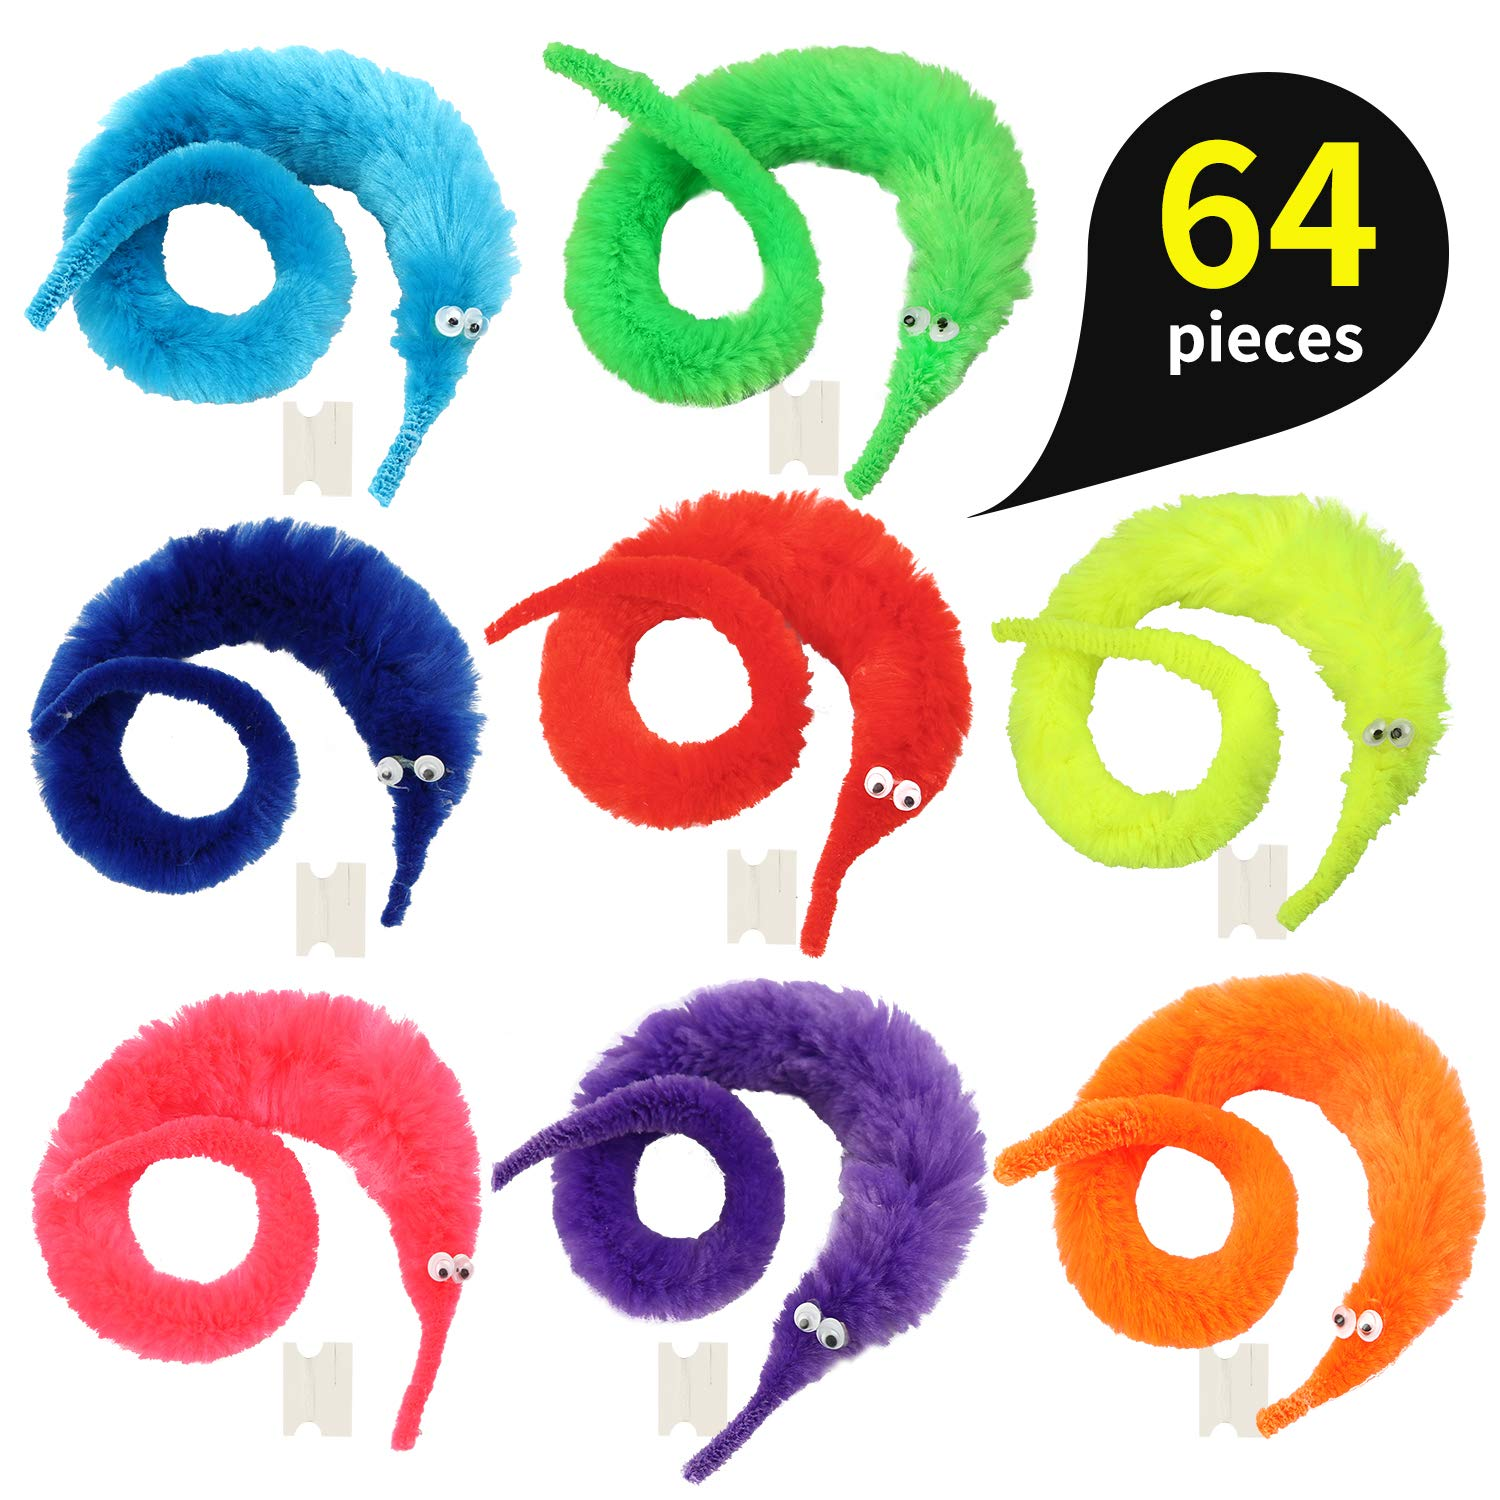 pushang 64pcs Magic Worm Toys, Magic Wiggle Twisty Fuzzy Worm Trick Toy Party Favors (8 Colors) by pushang